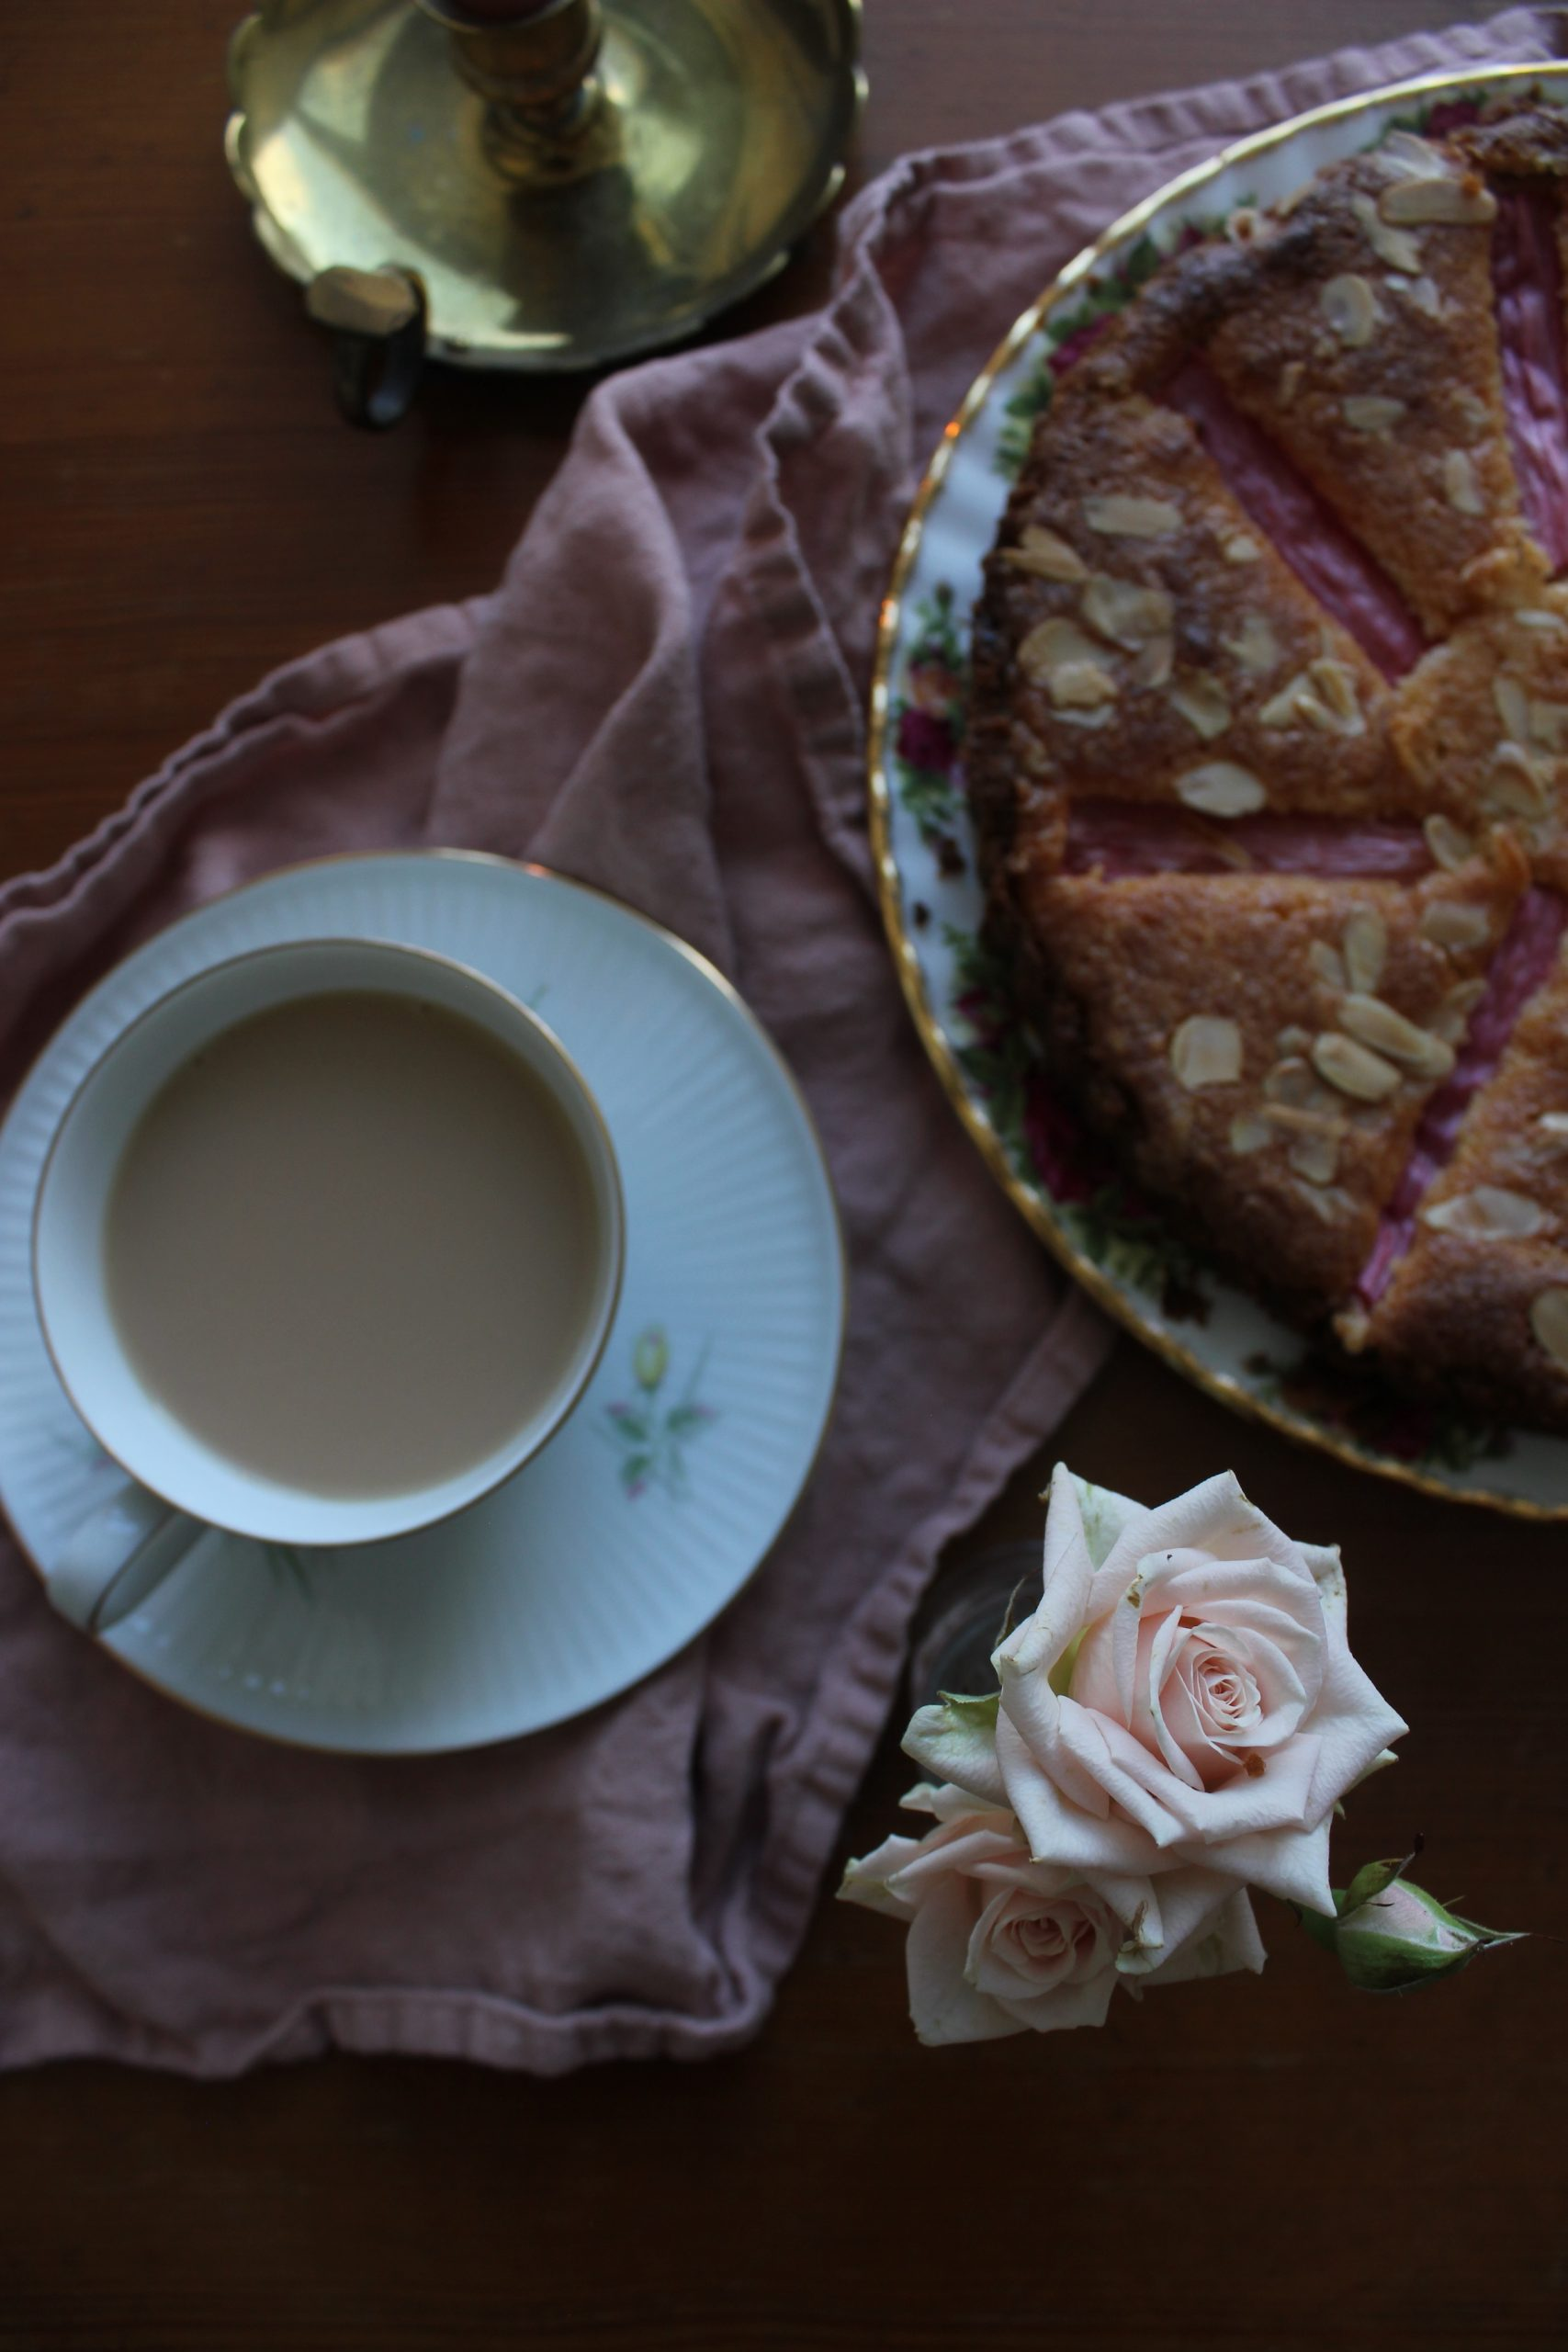 Rose and Rhubarb Frangipane Tart